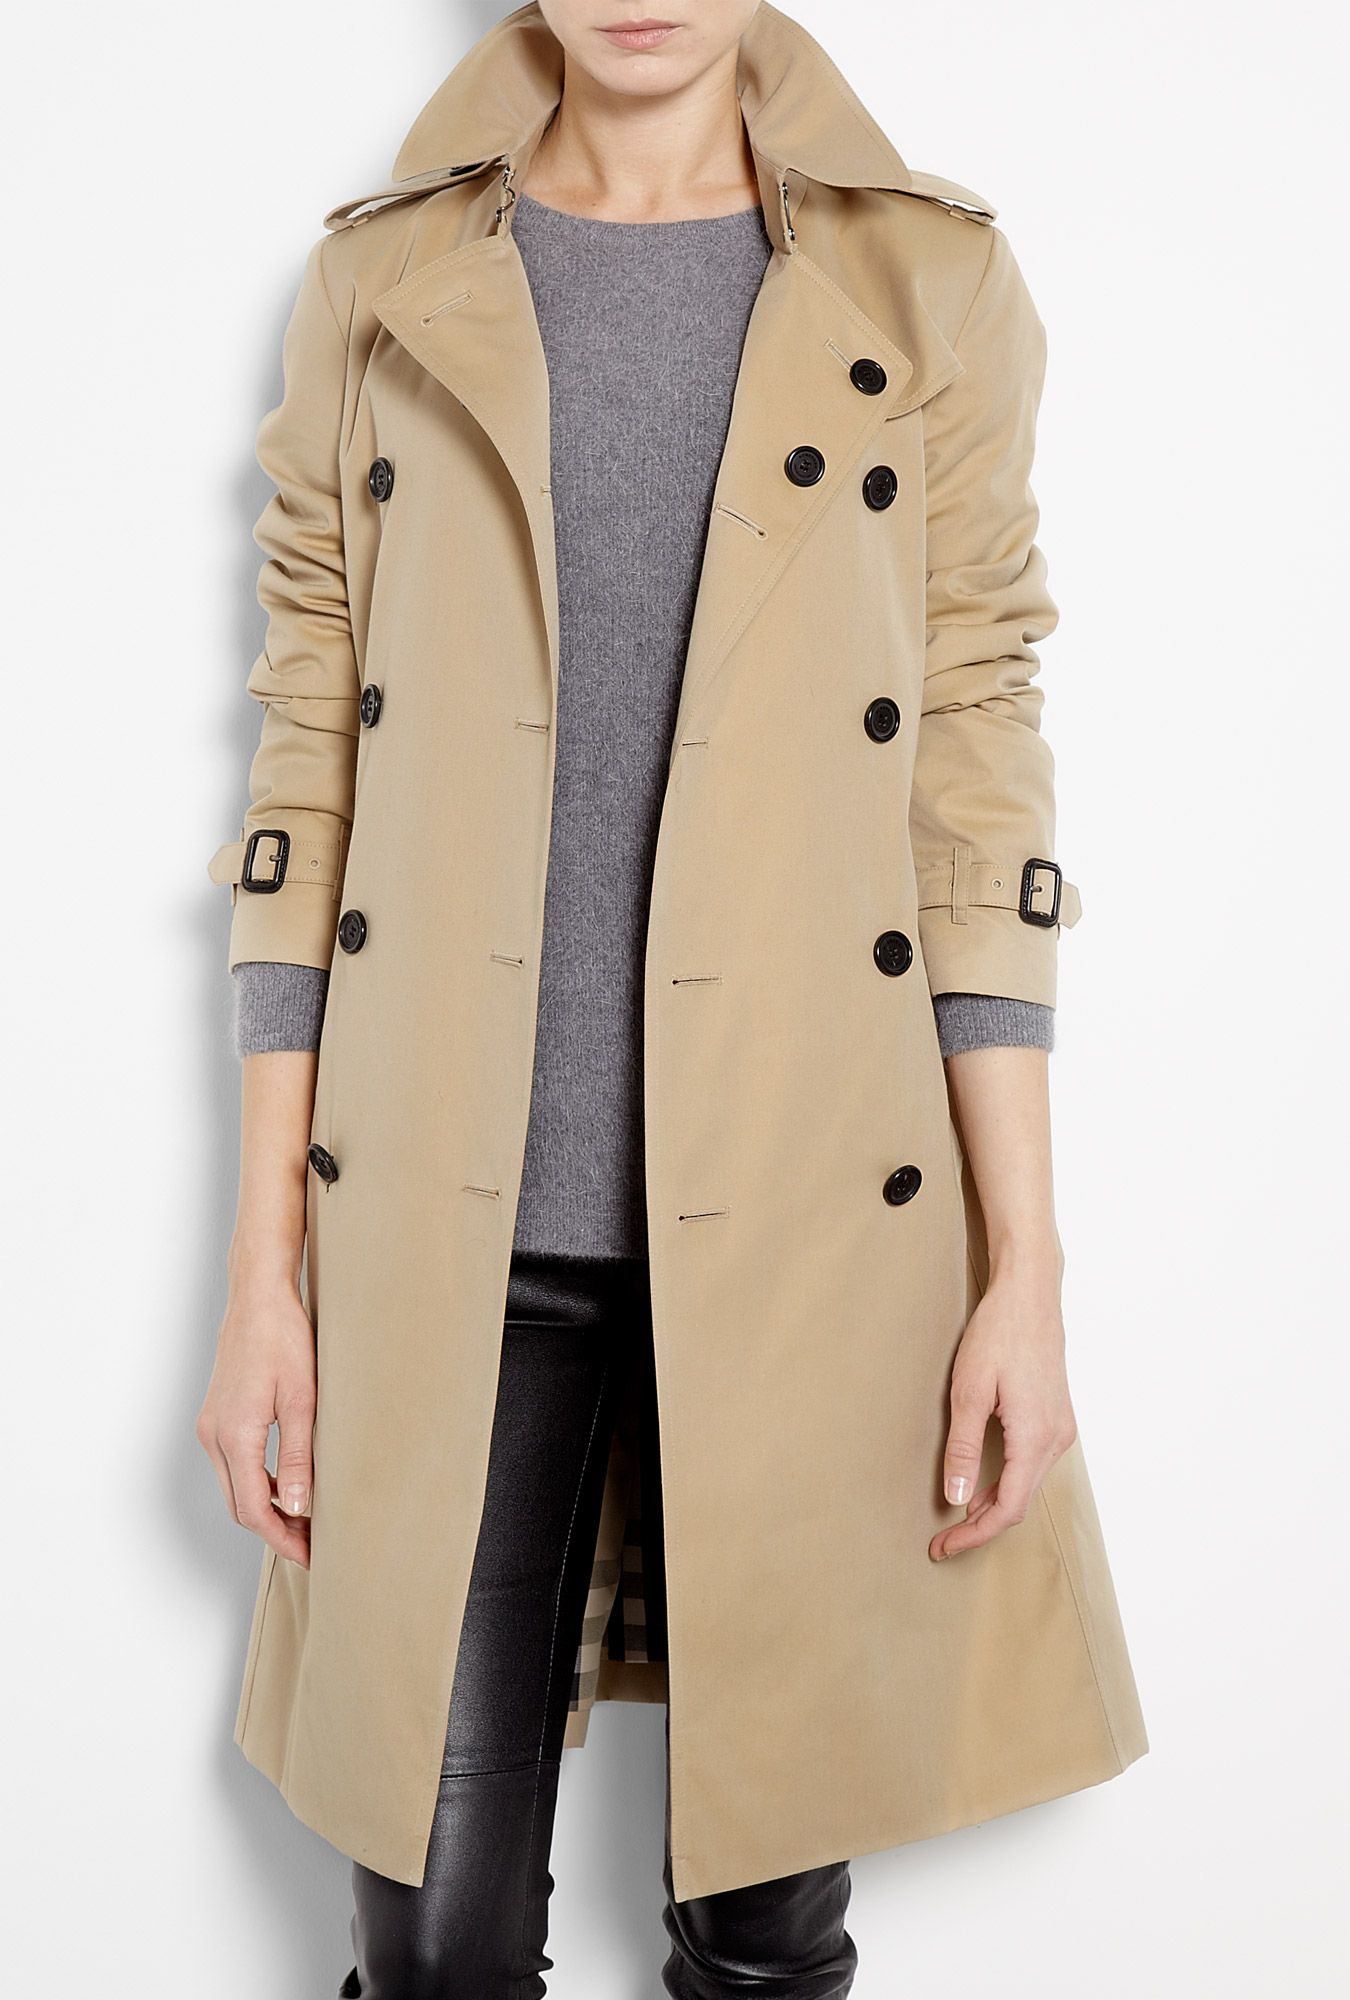 Burberry Brit | Honey Cotton Trench Coat by Burberry Brit